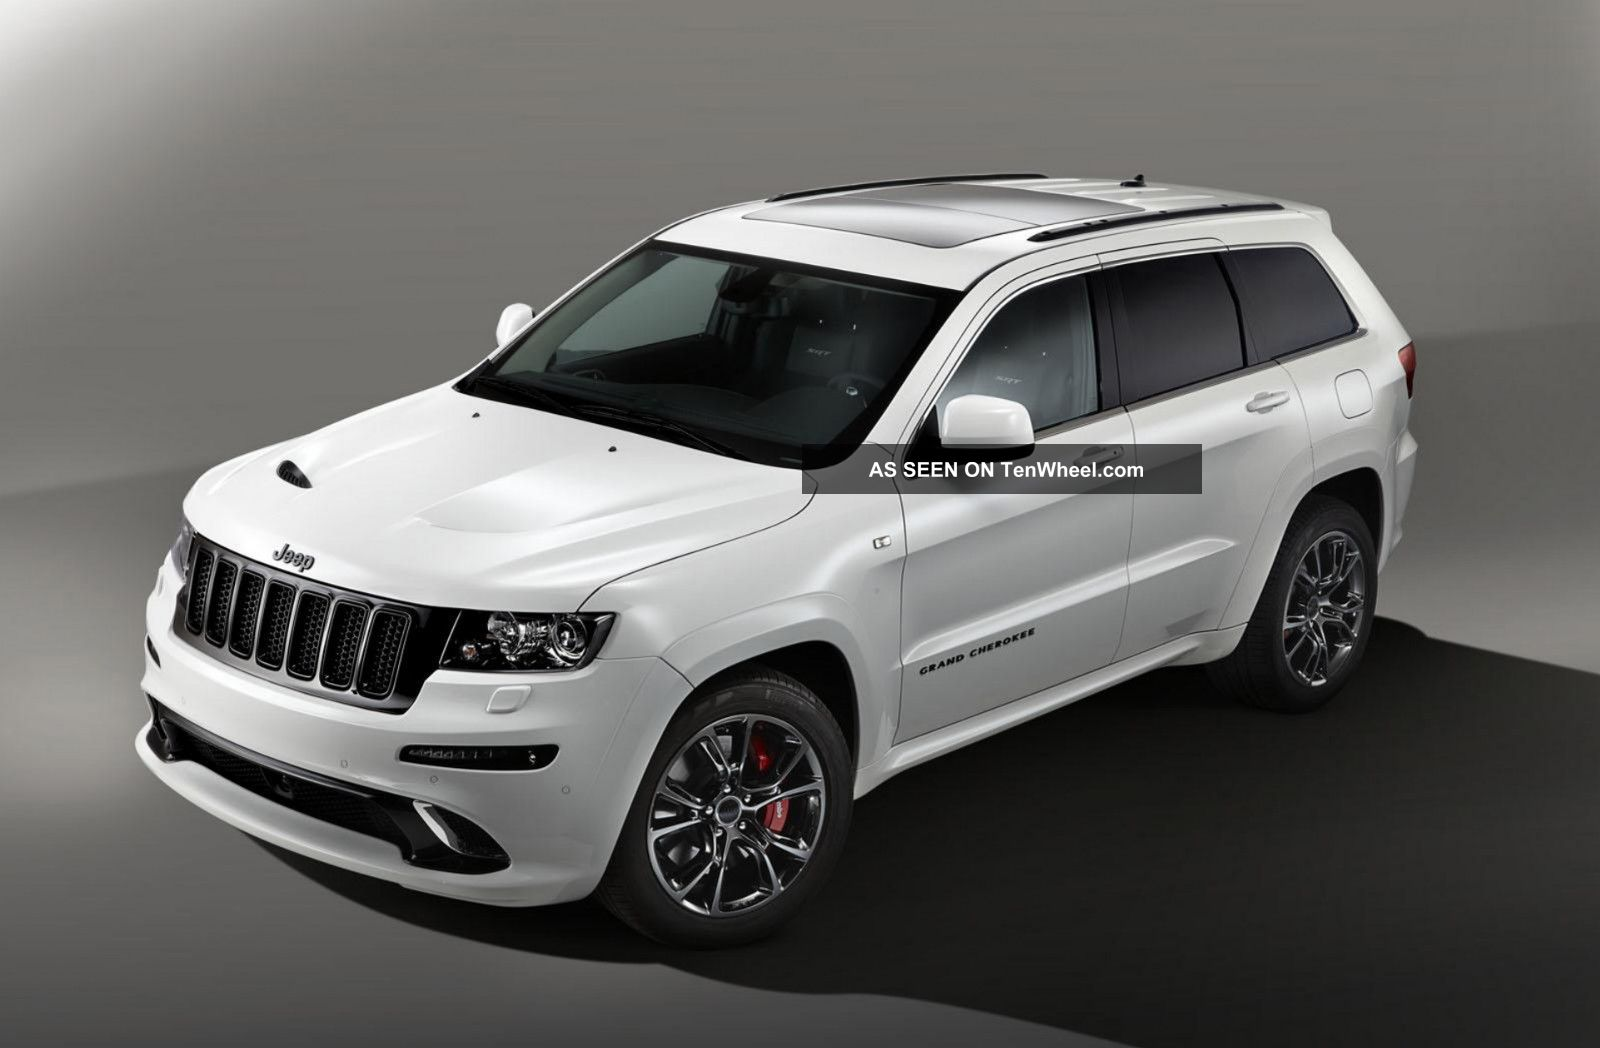 hennessey 2013 jeep grand cherokee srt8 hpe 650 supercharged fully loaded white. Black Bedroom Furniture Sets. Home Design Ideas